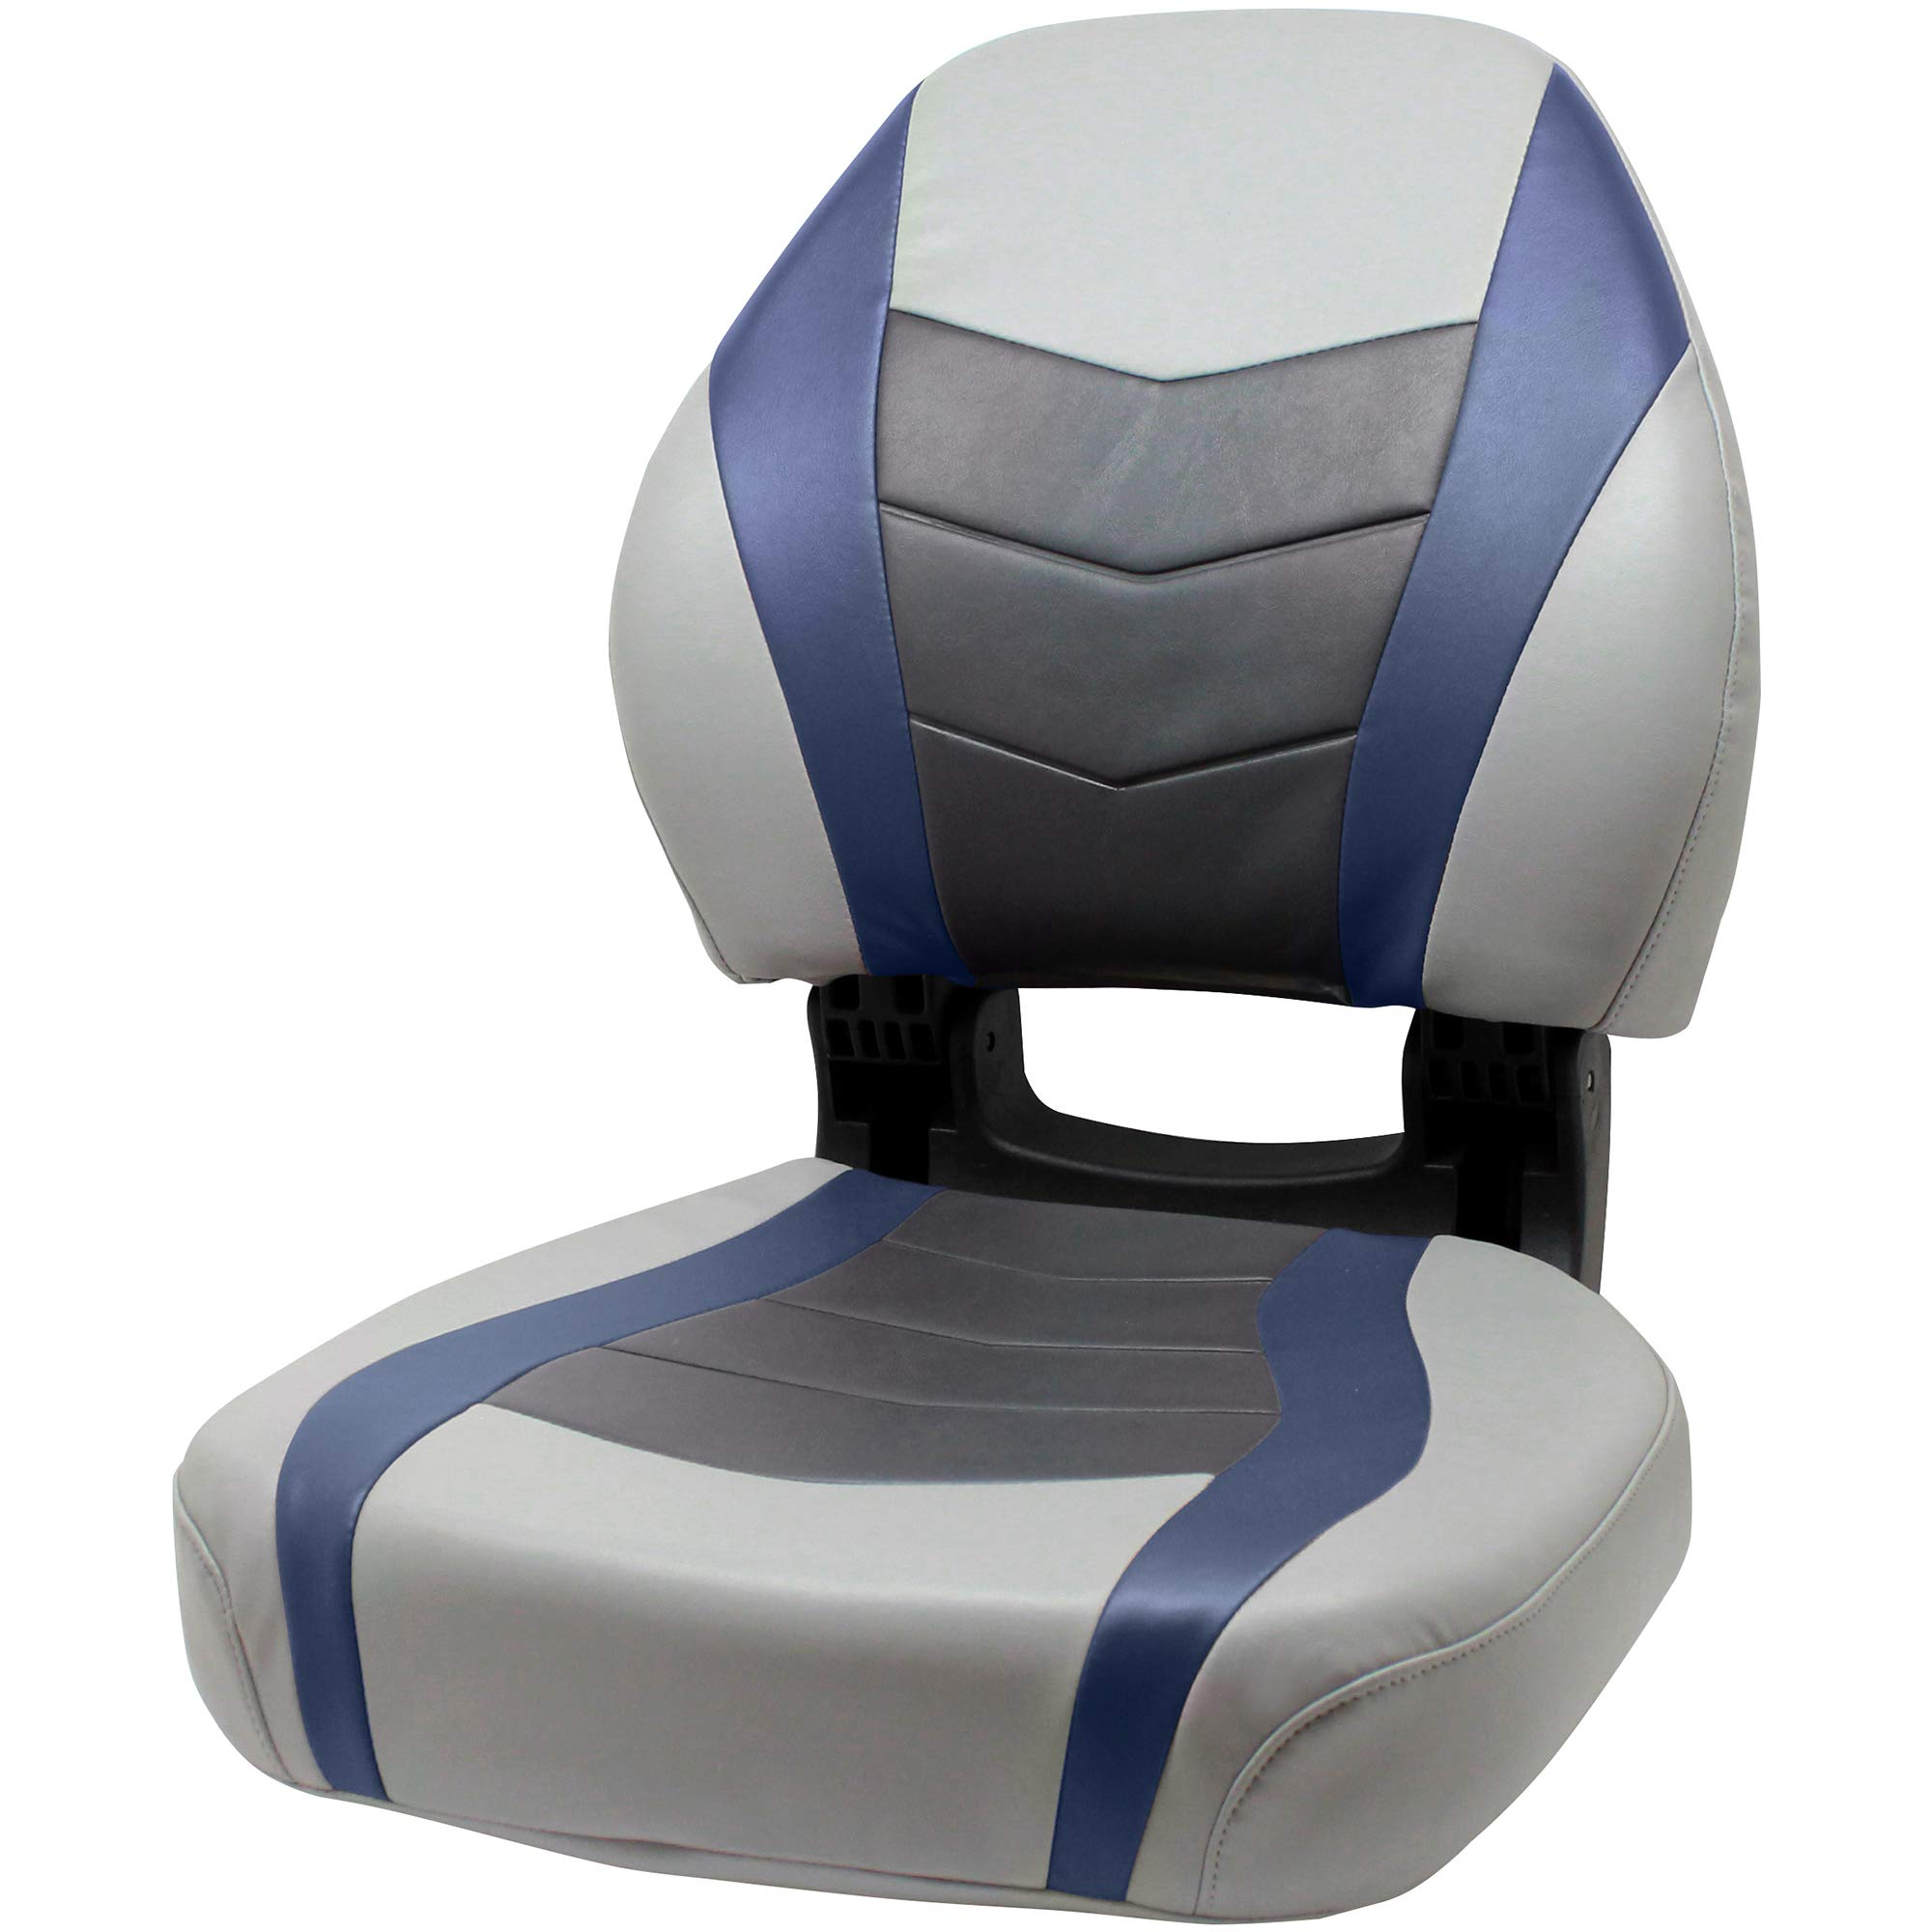 Overton's Torsa Pro Elite Boat Seat Marble/Midnight/Charcoal by Overton's